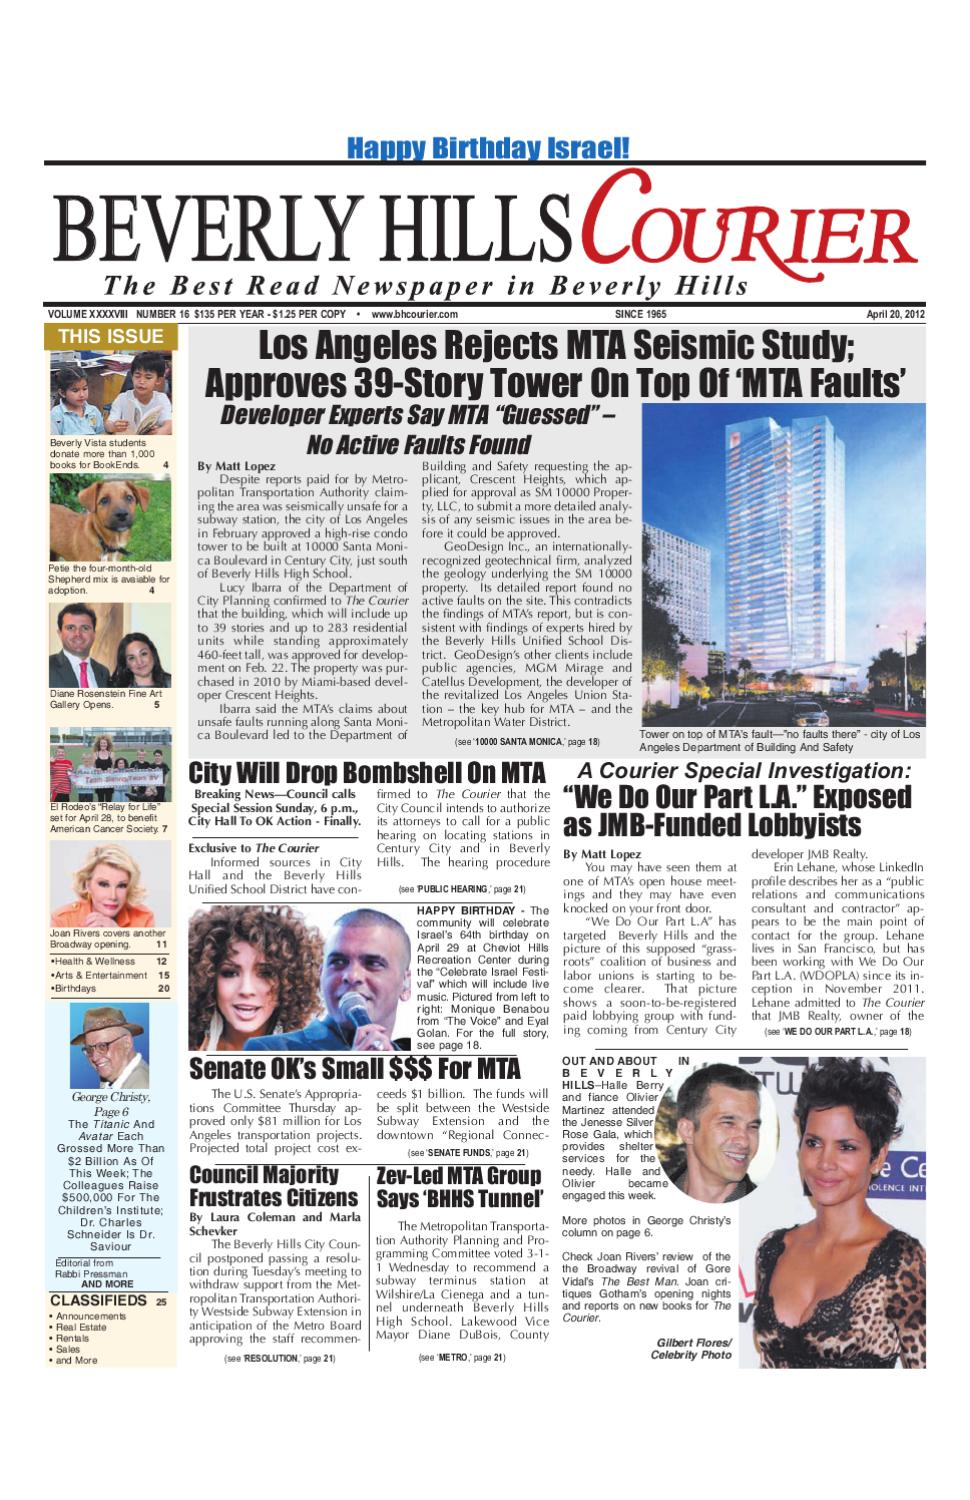 Bh Courier 04 20 12 Edition By Bh Courier Acquisition Llc Issuu